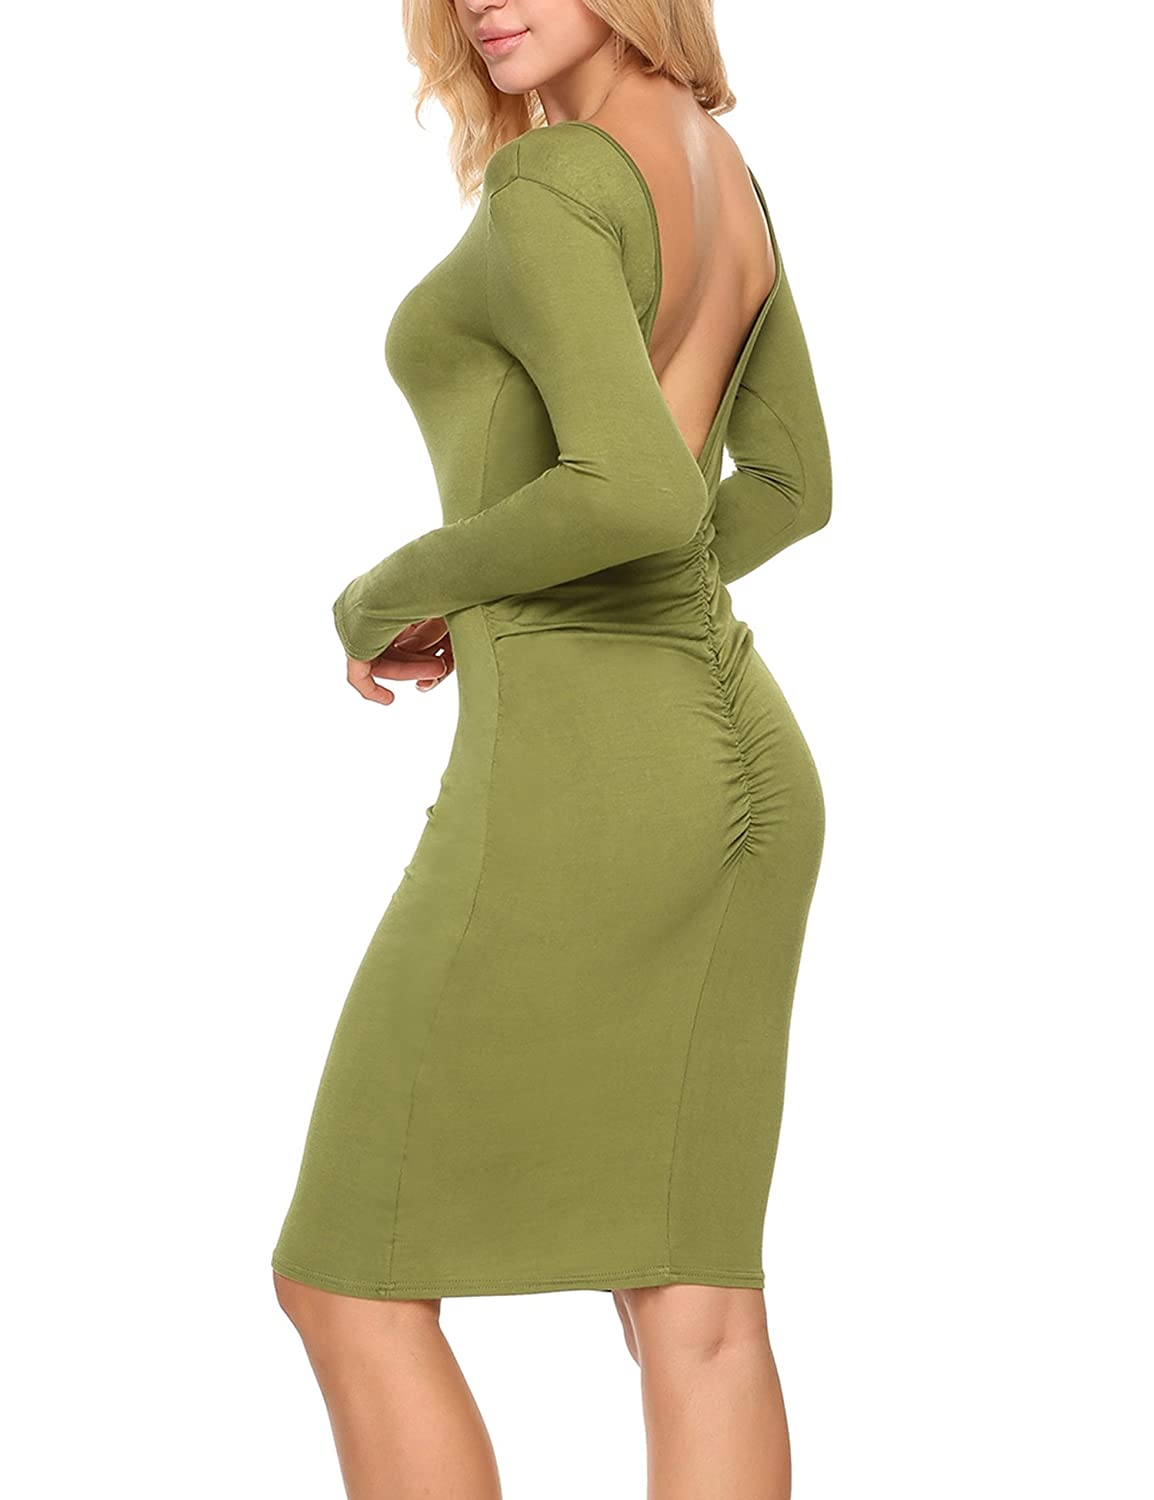 31dfb9af3150 Women sexy stand neck long sleeve slim solid pencil dress. Garment Care:  Washing max 30℃, Hang to dry, Low iron. Backless design, rib dress, pull on  closure